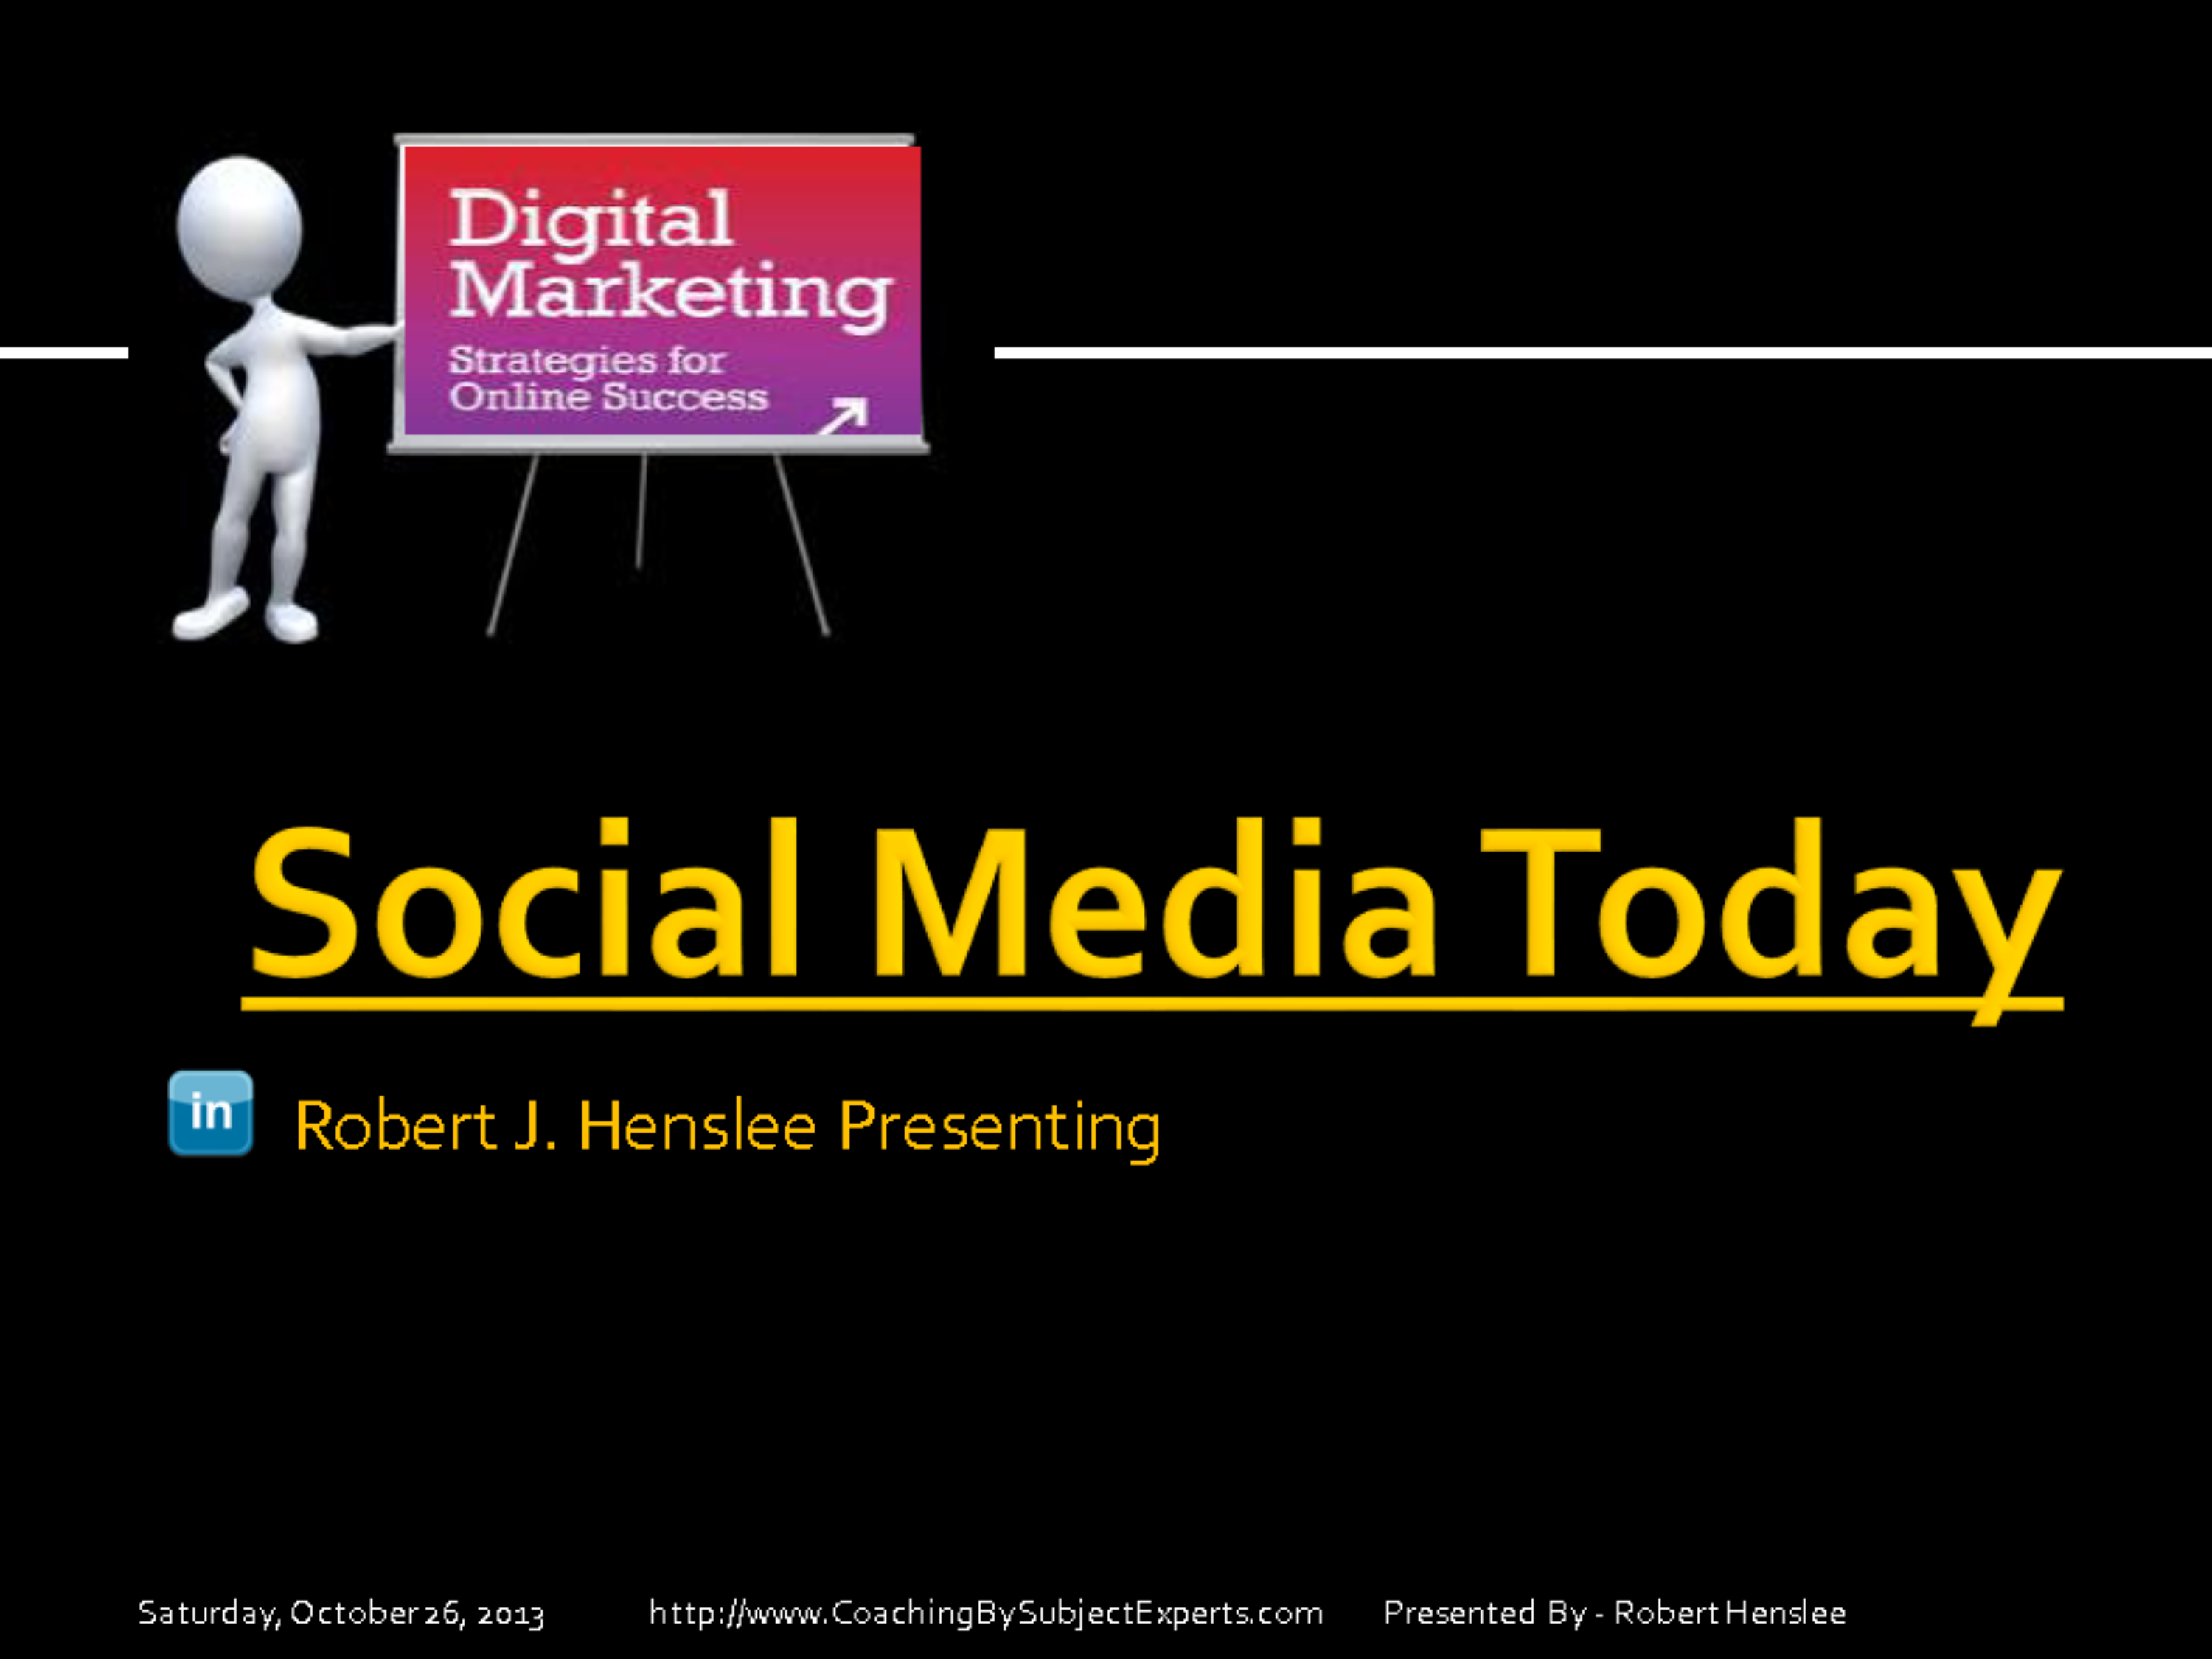 social media today Social media examiner helps millions of businesses discover how to best use social media marketing to connect with customers, drive traffic, and increase sales.